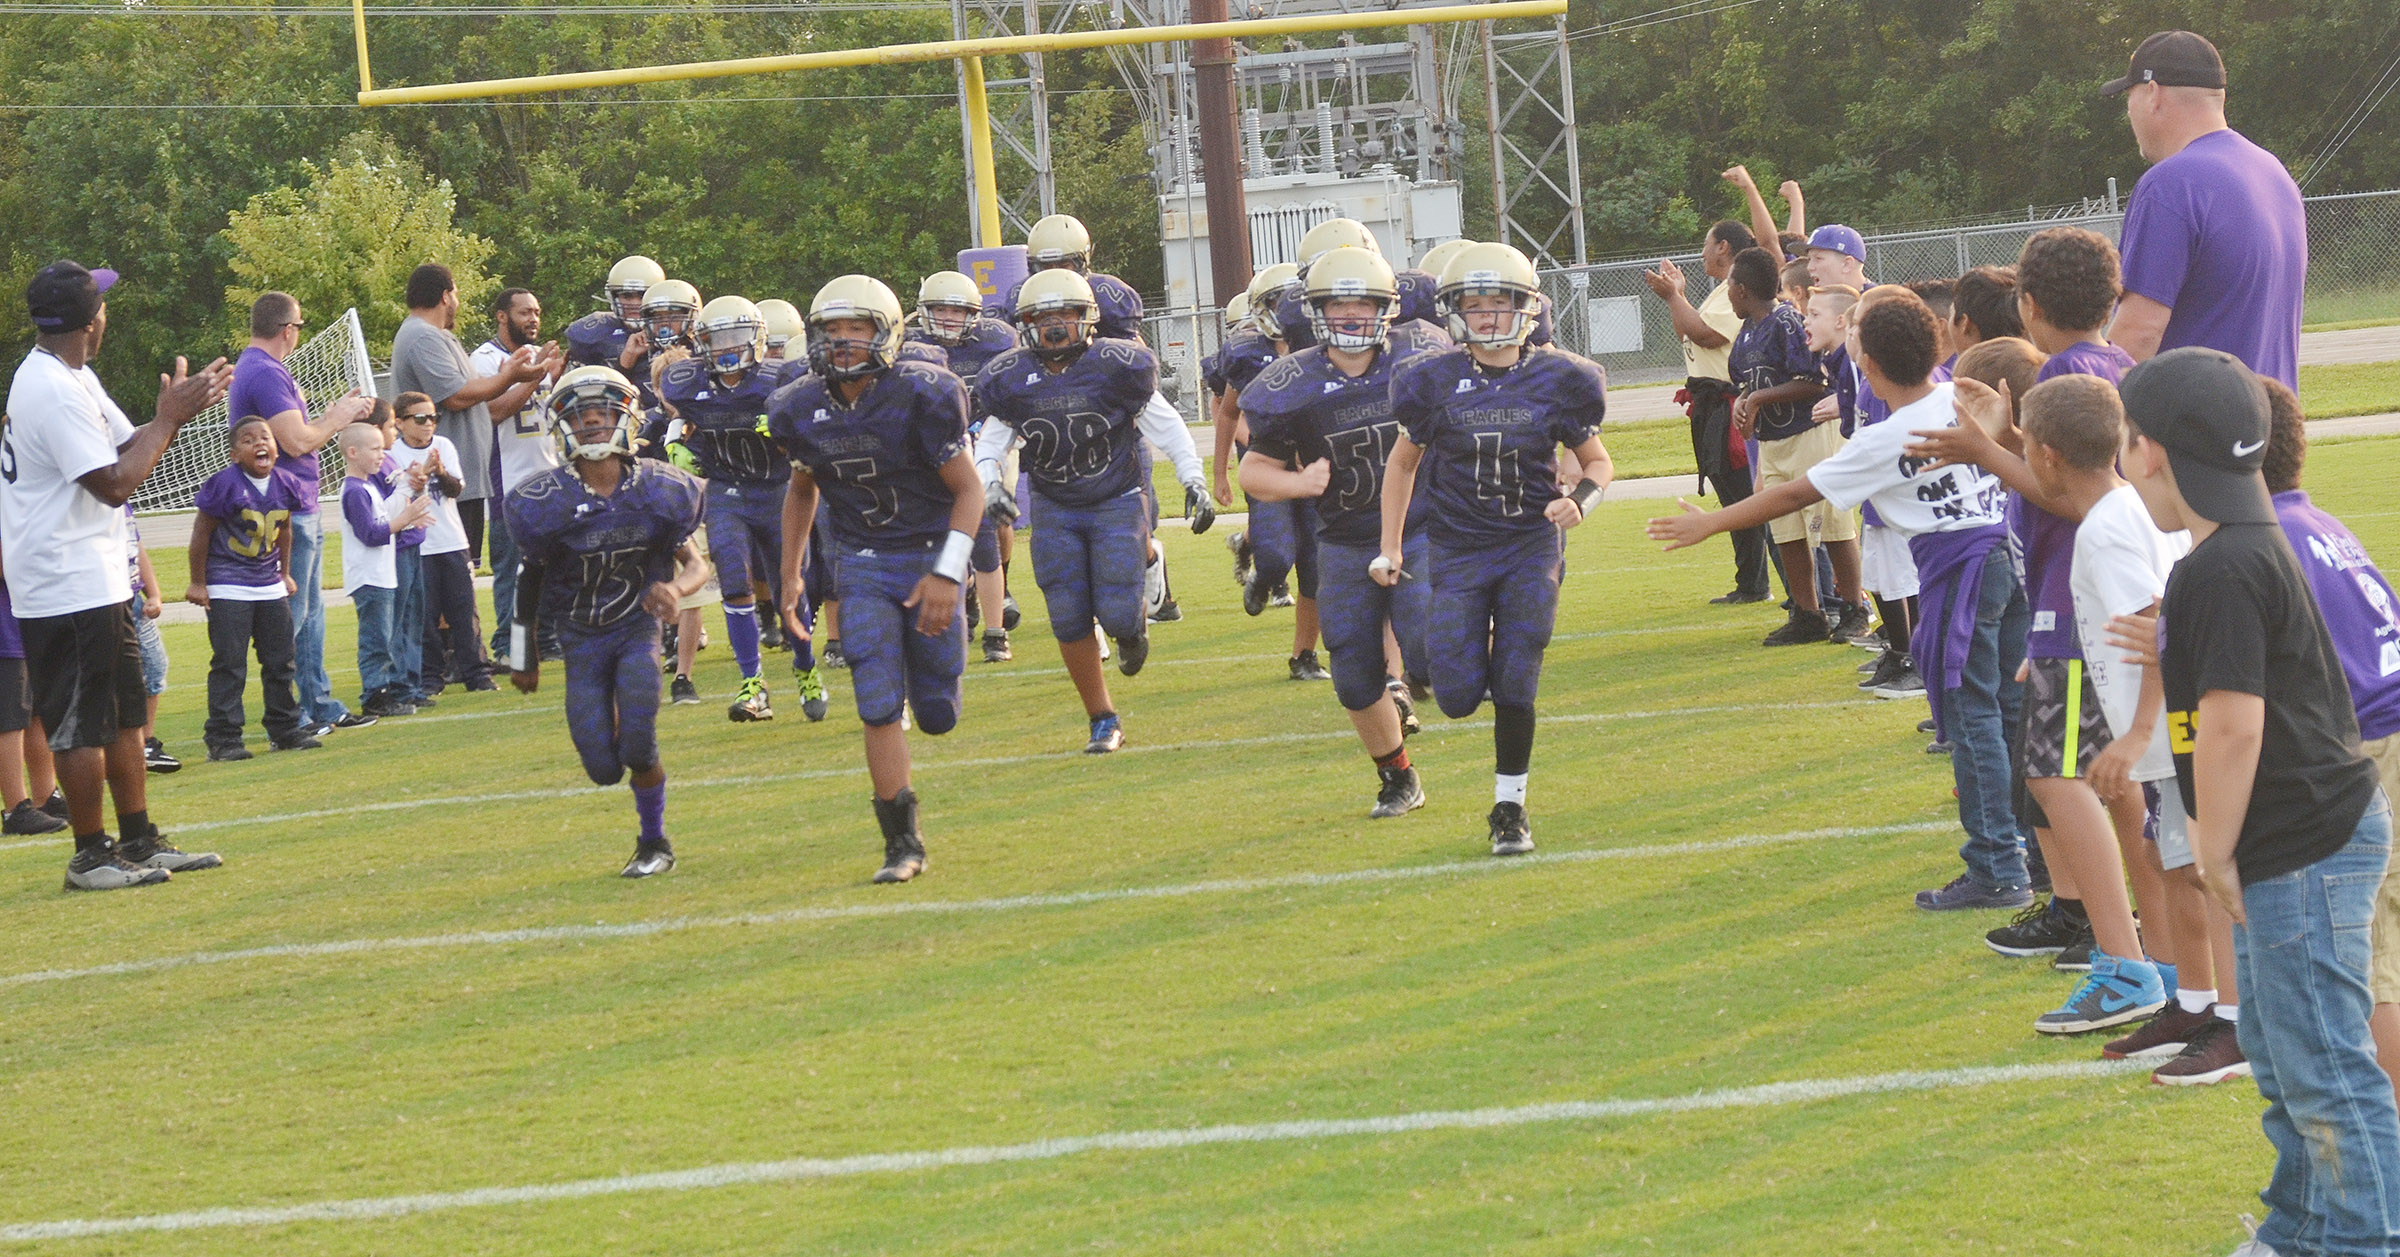 CMS football players take the field.